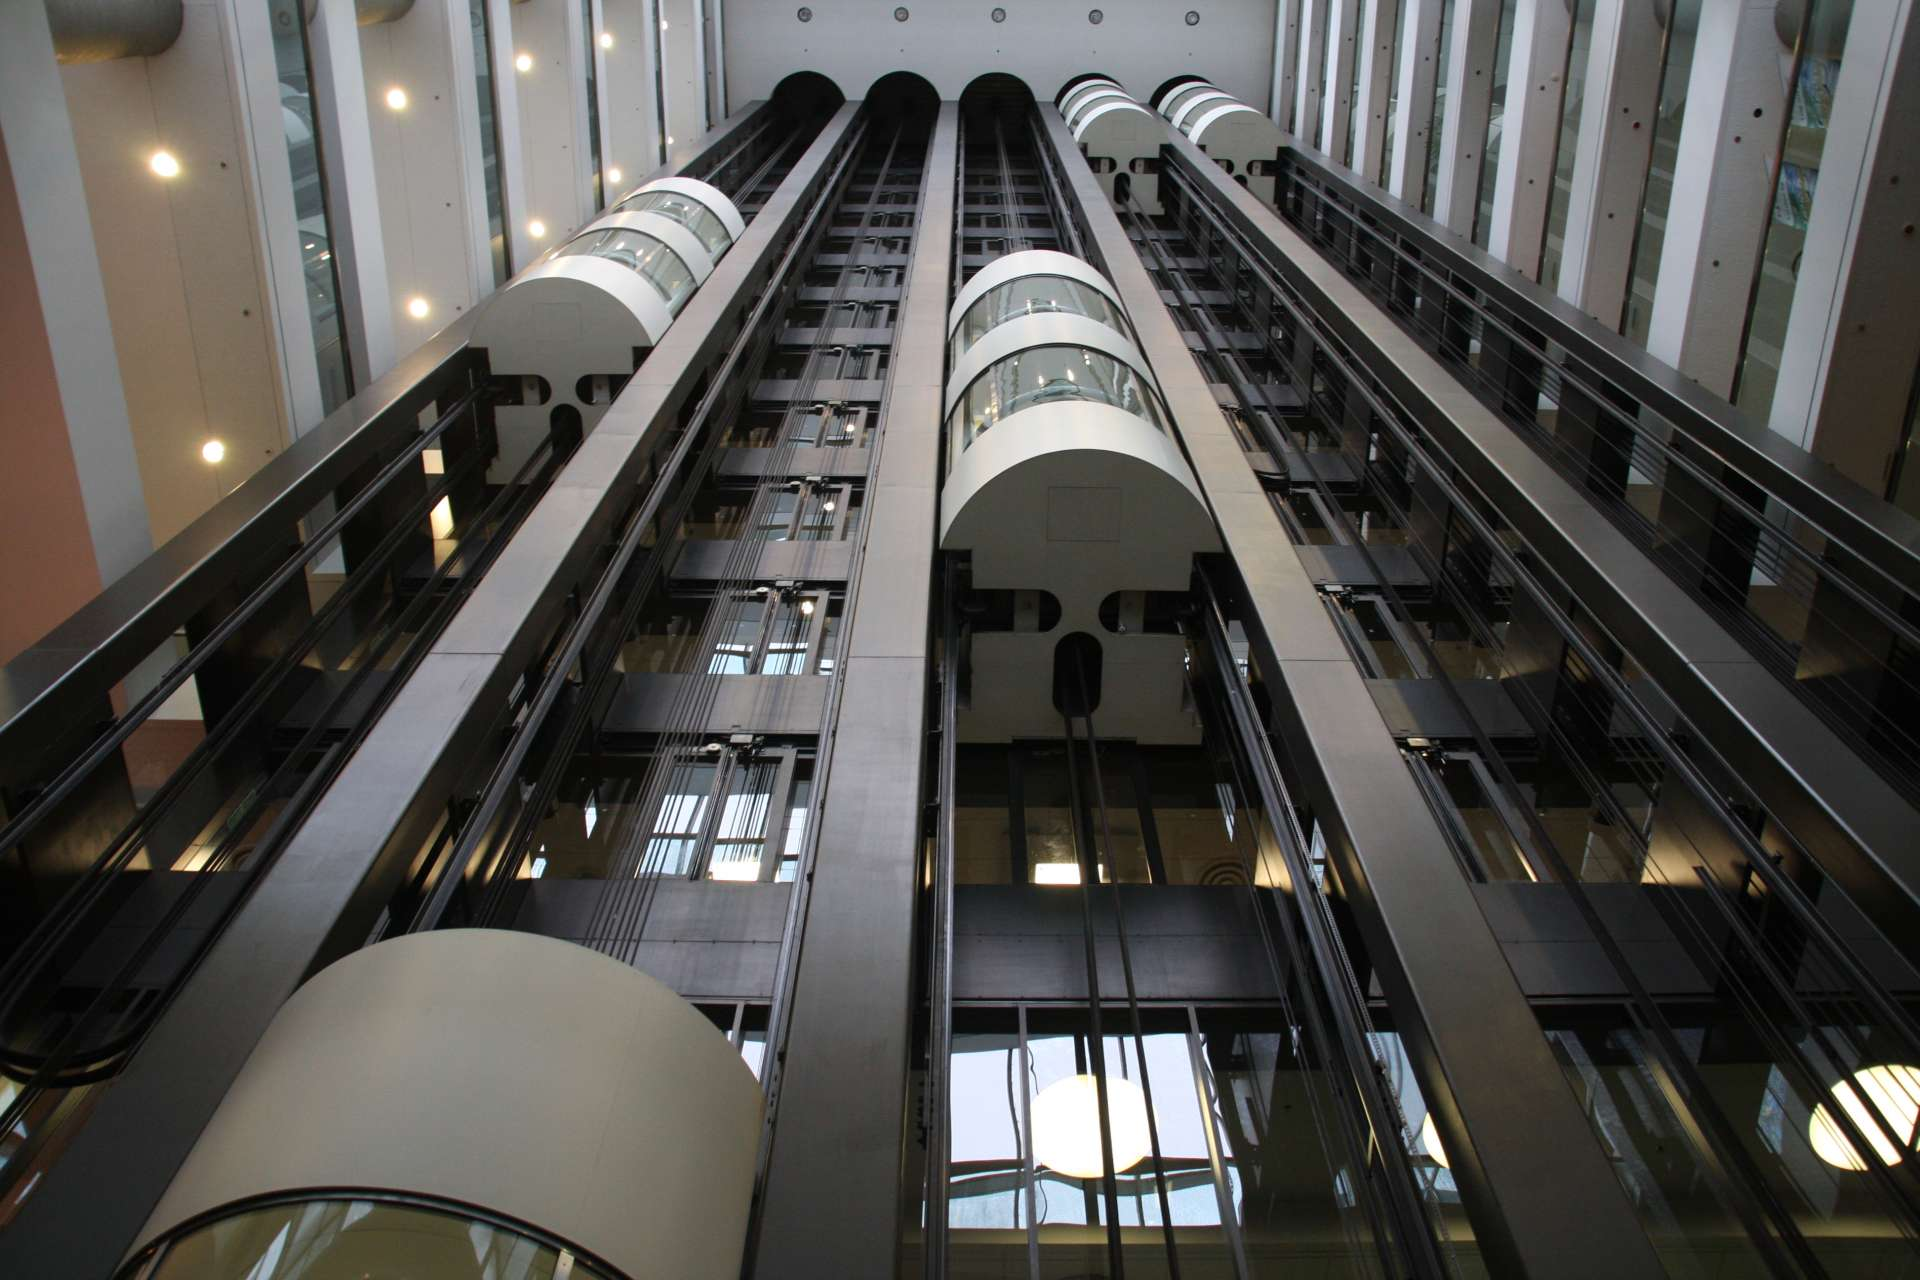 Double deck elevators at CD Howe Building, Ottawa